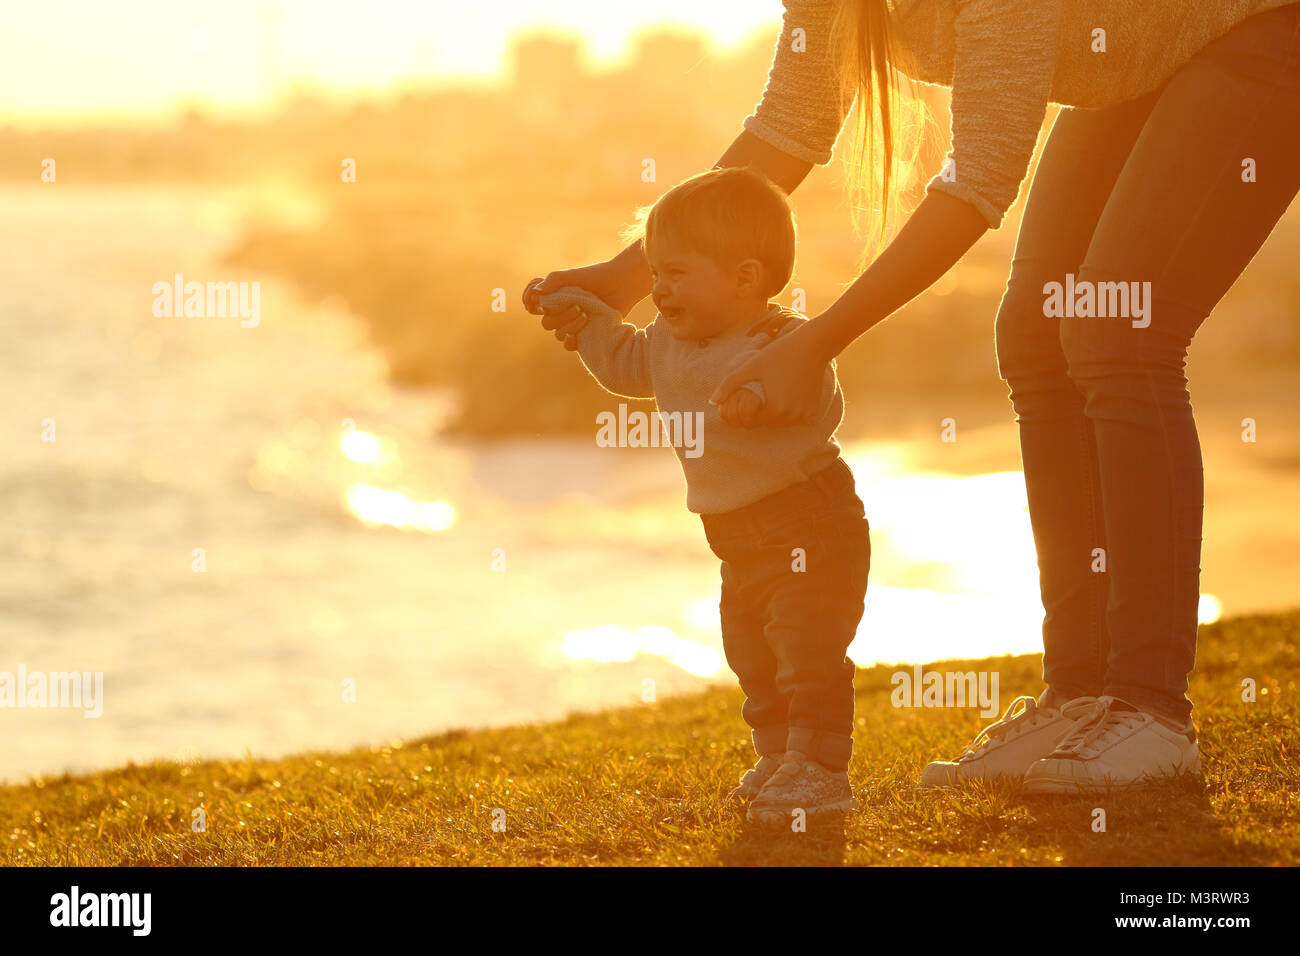 Side view of a kid learning to walk and mother helping him on the grass outdoors at sunset with a city in the background - Stock Image